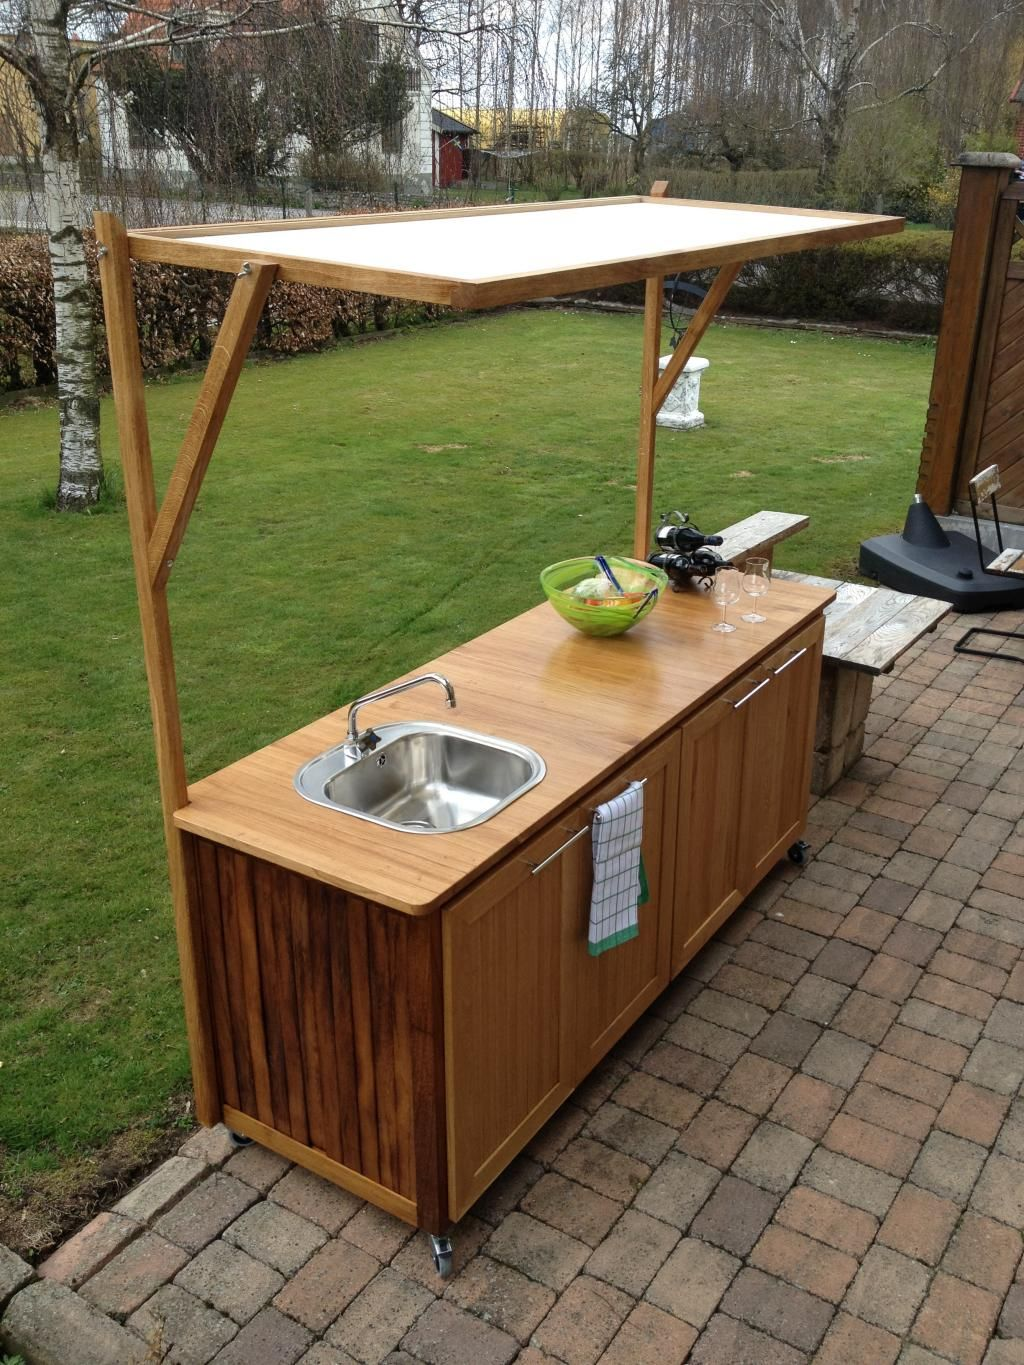 Build Your Own Outdoor Kitchen | Outdoor Kitchen Sink Cabinets With Shades Build Your Own Outdoor